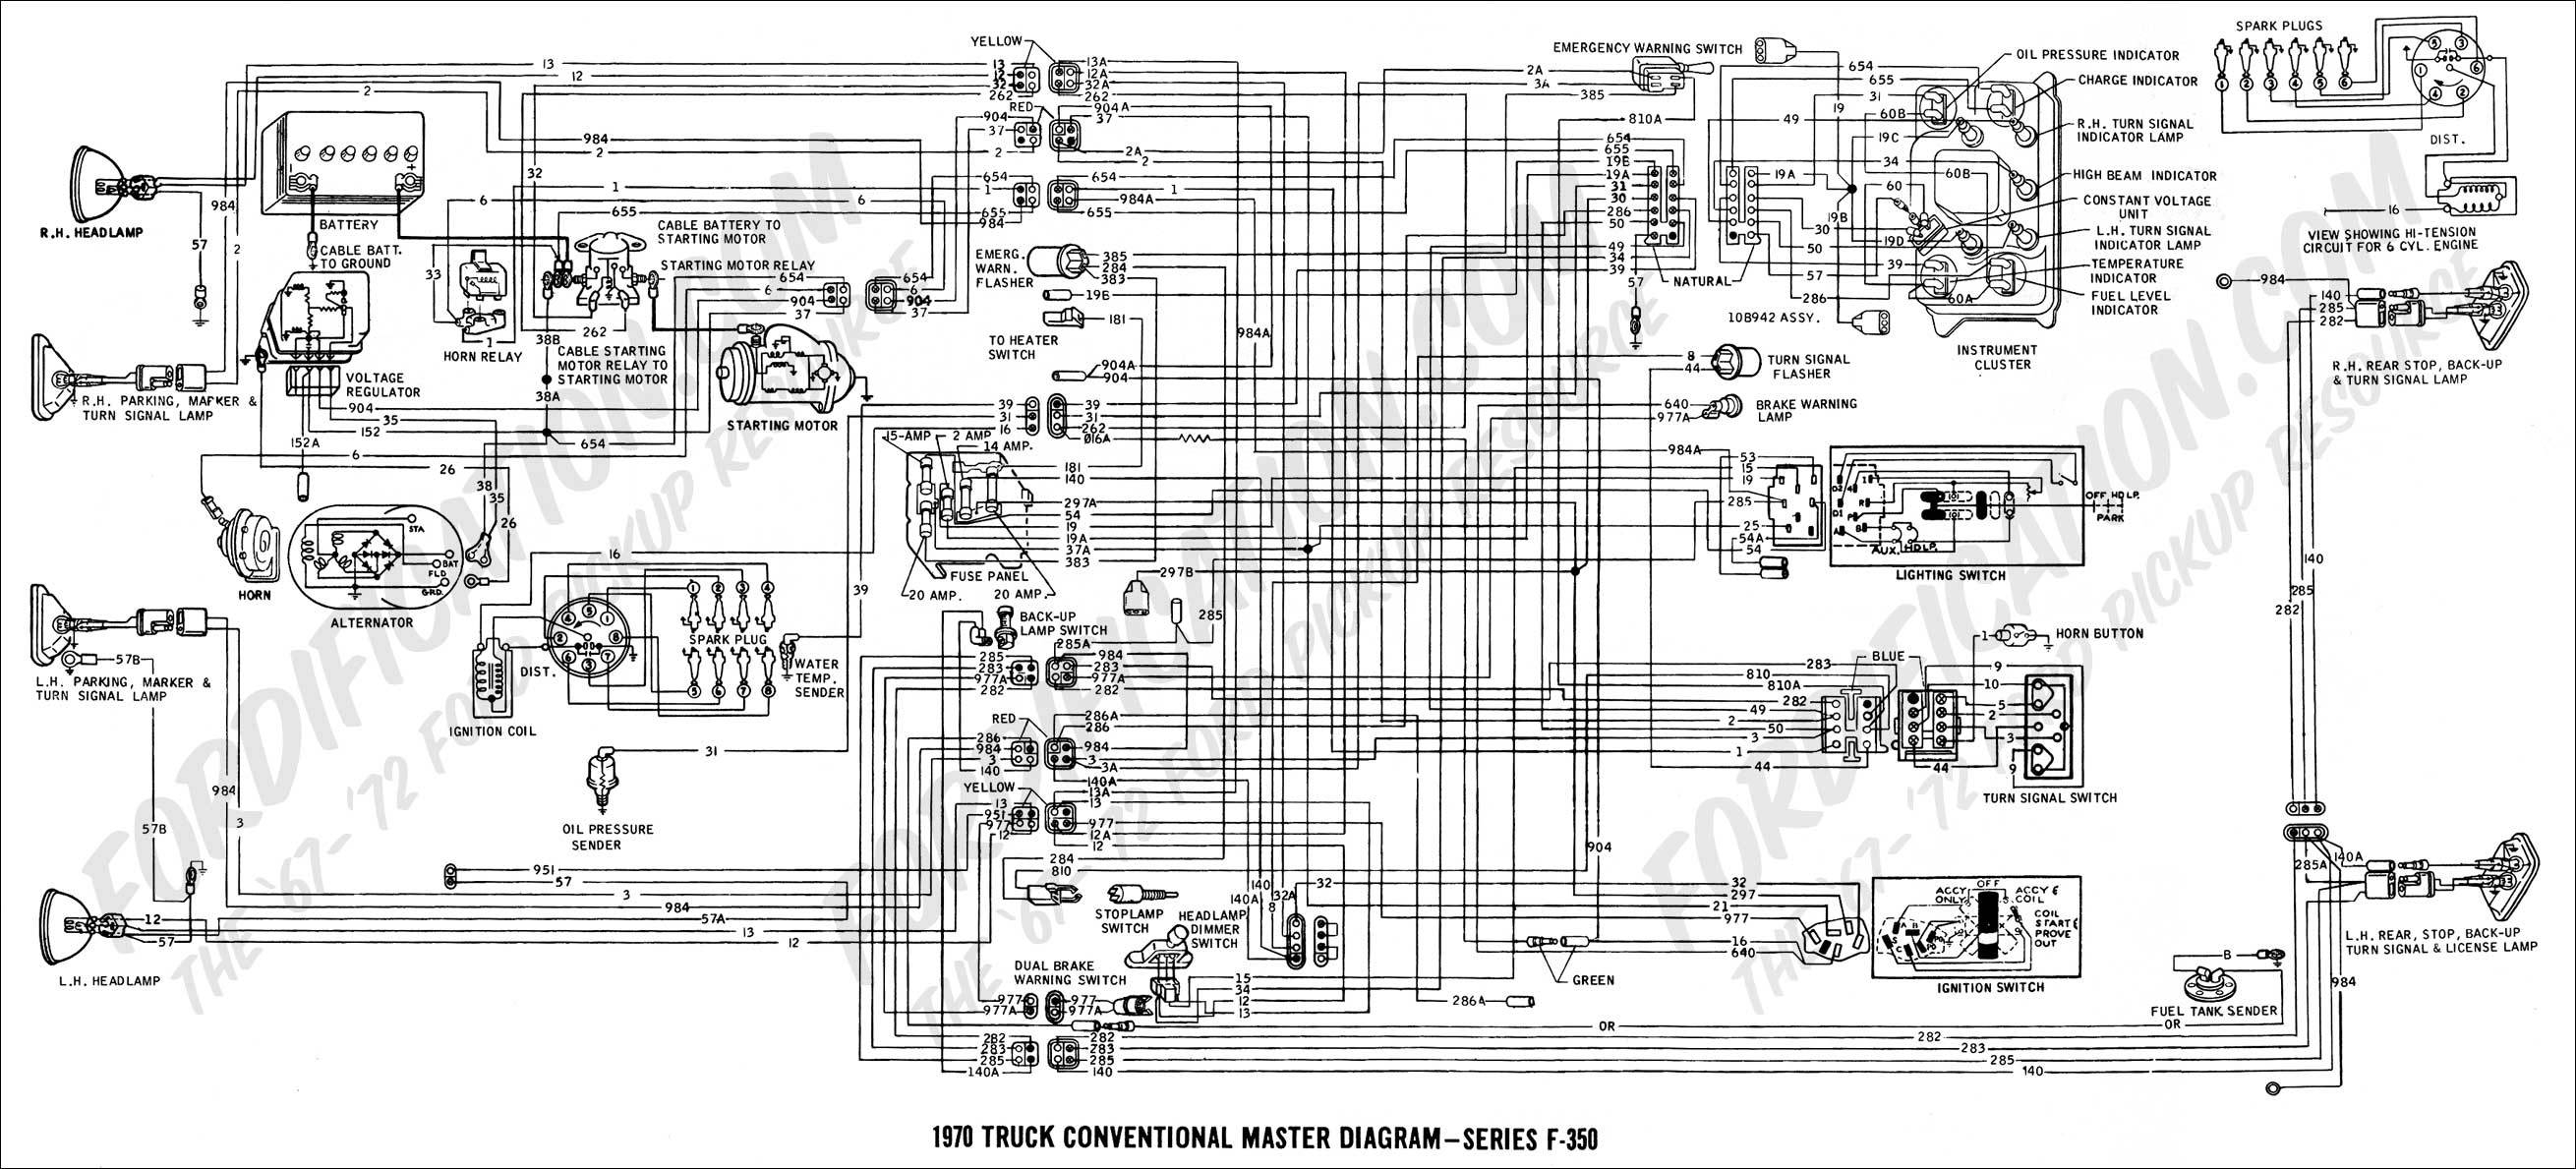 2001 ford f150 trailer wiring diagram Download-Wiring Diagram 1953 Ford Truck Diagrams Trucks Awesome Collection F350 Trailer With F250 5-a